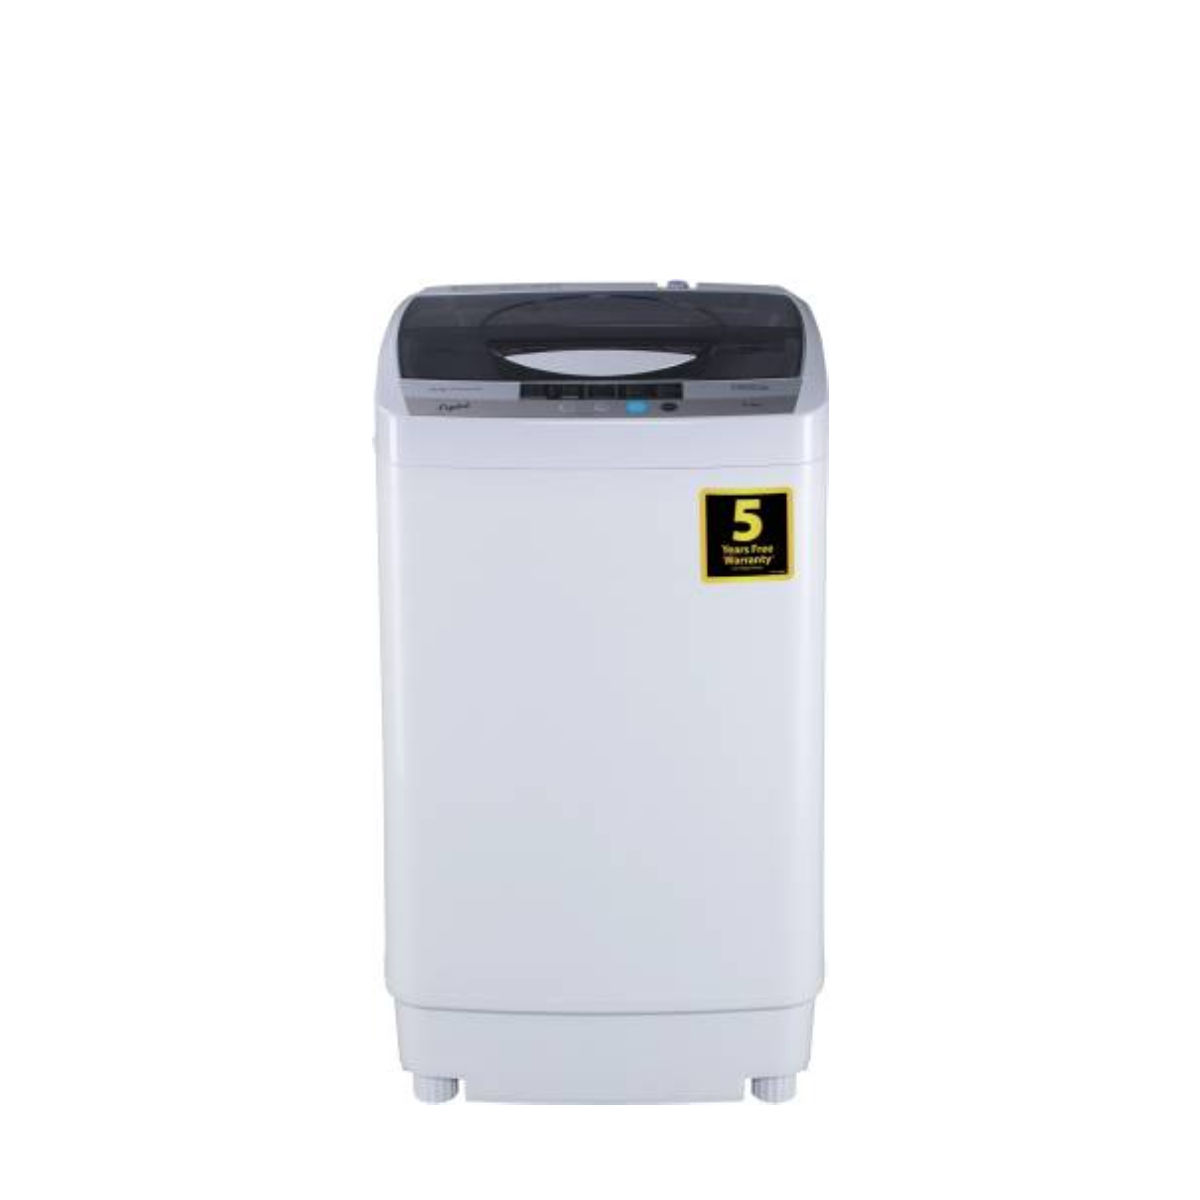 Onida 6.2  Fully Automatic Top Load Washing Machine White (T62CG)